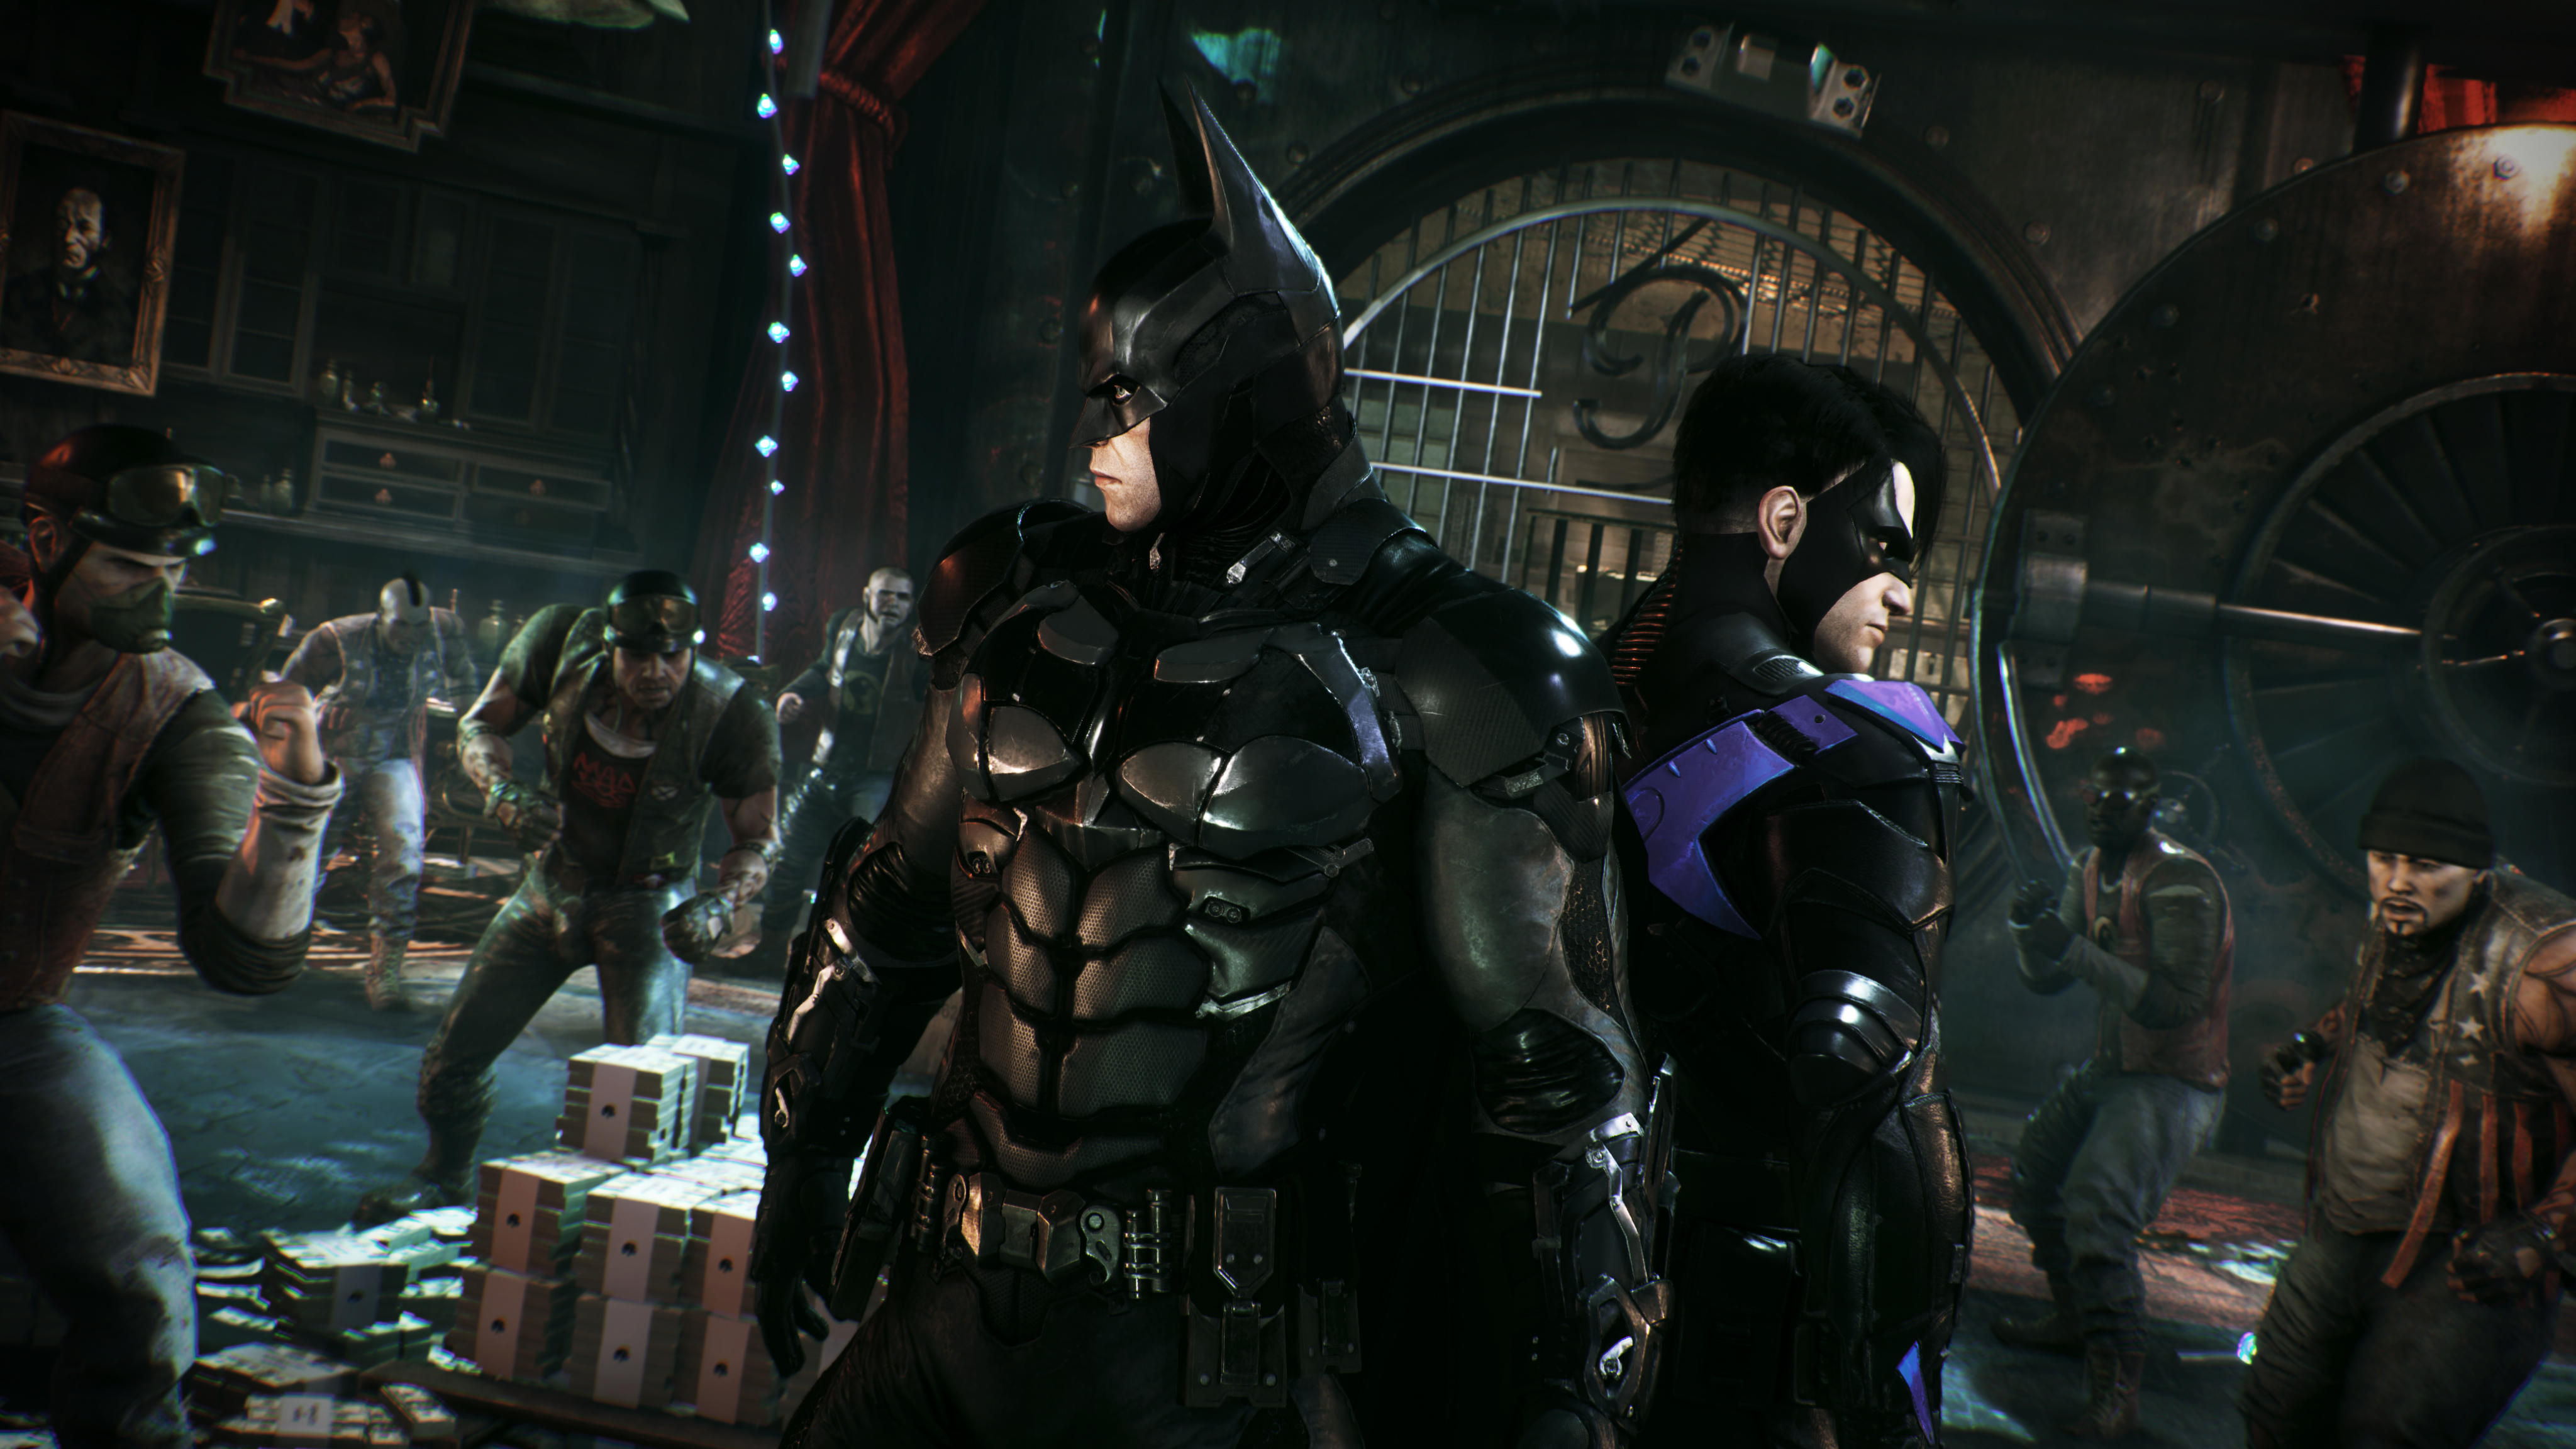 Batman: Arkham Knight - not the game PC owners deserve